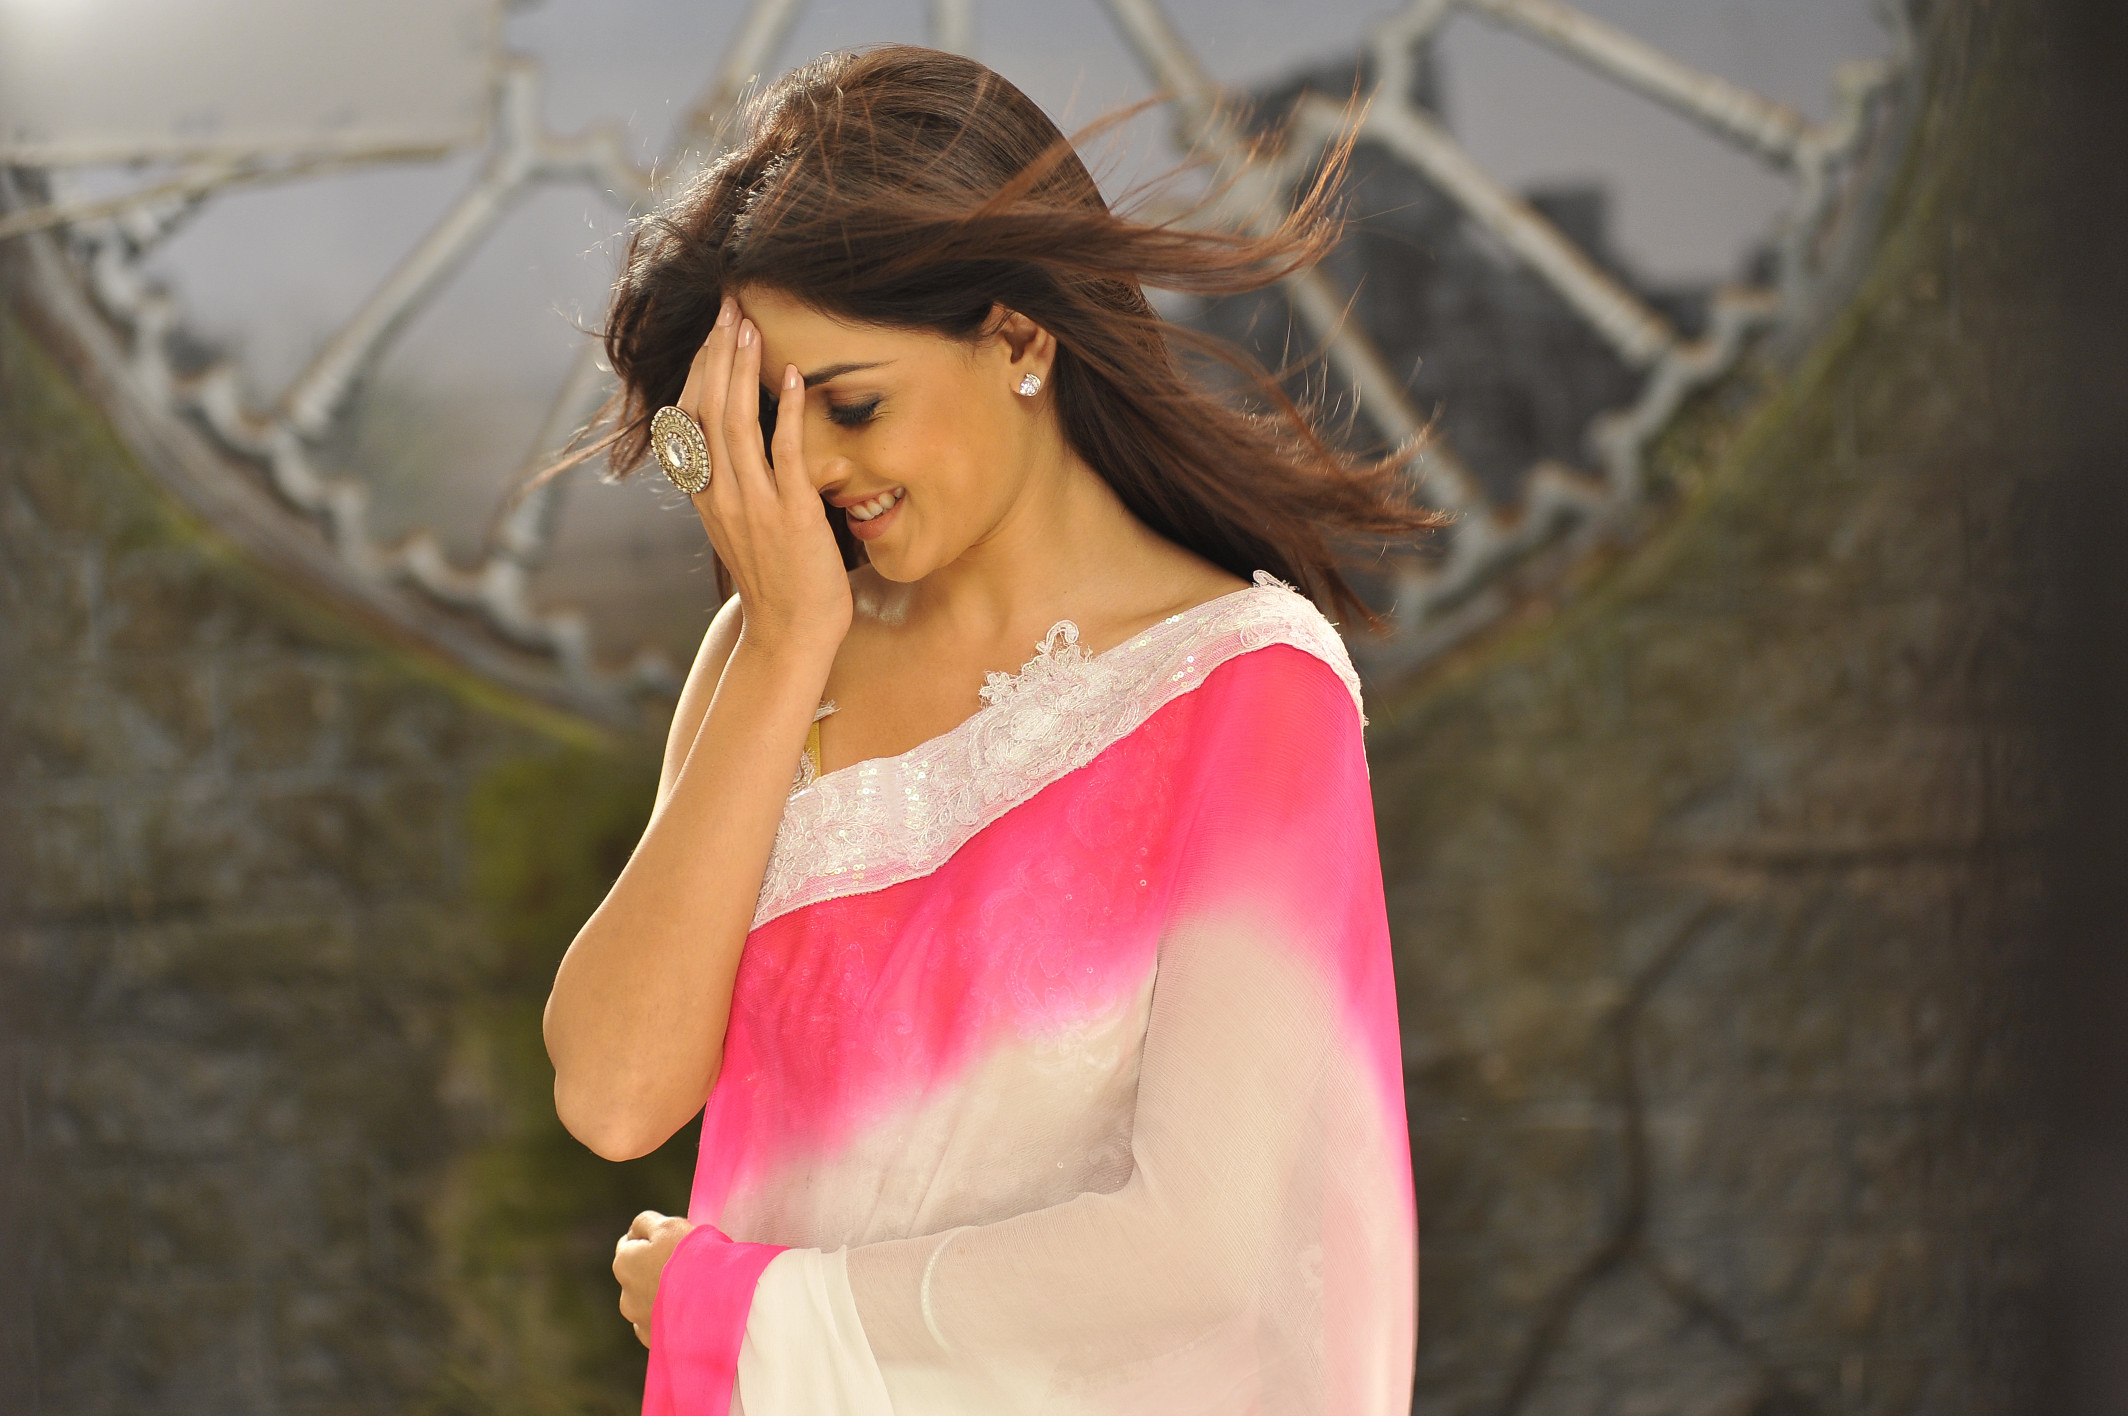 genelia d'souza full hd wallpaper and background image | 2128x1416